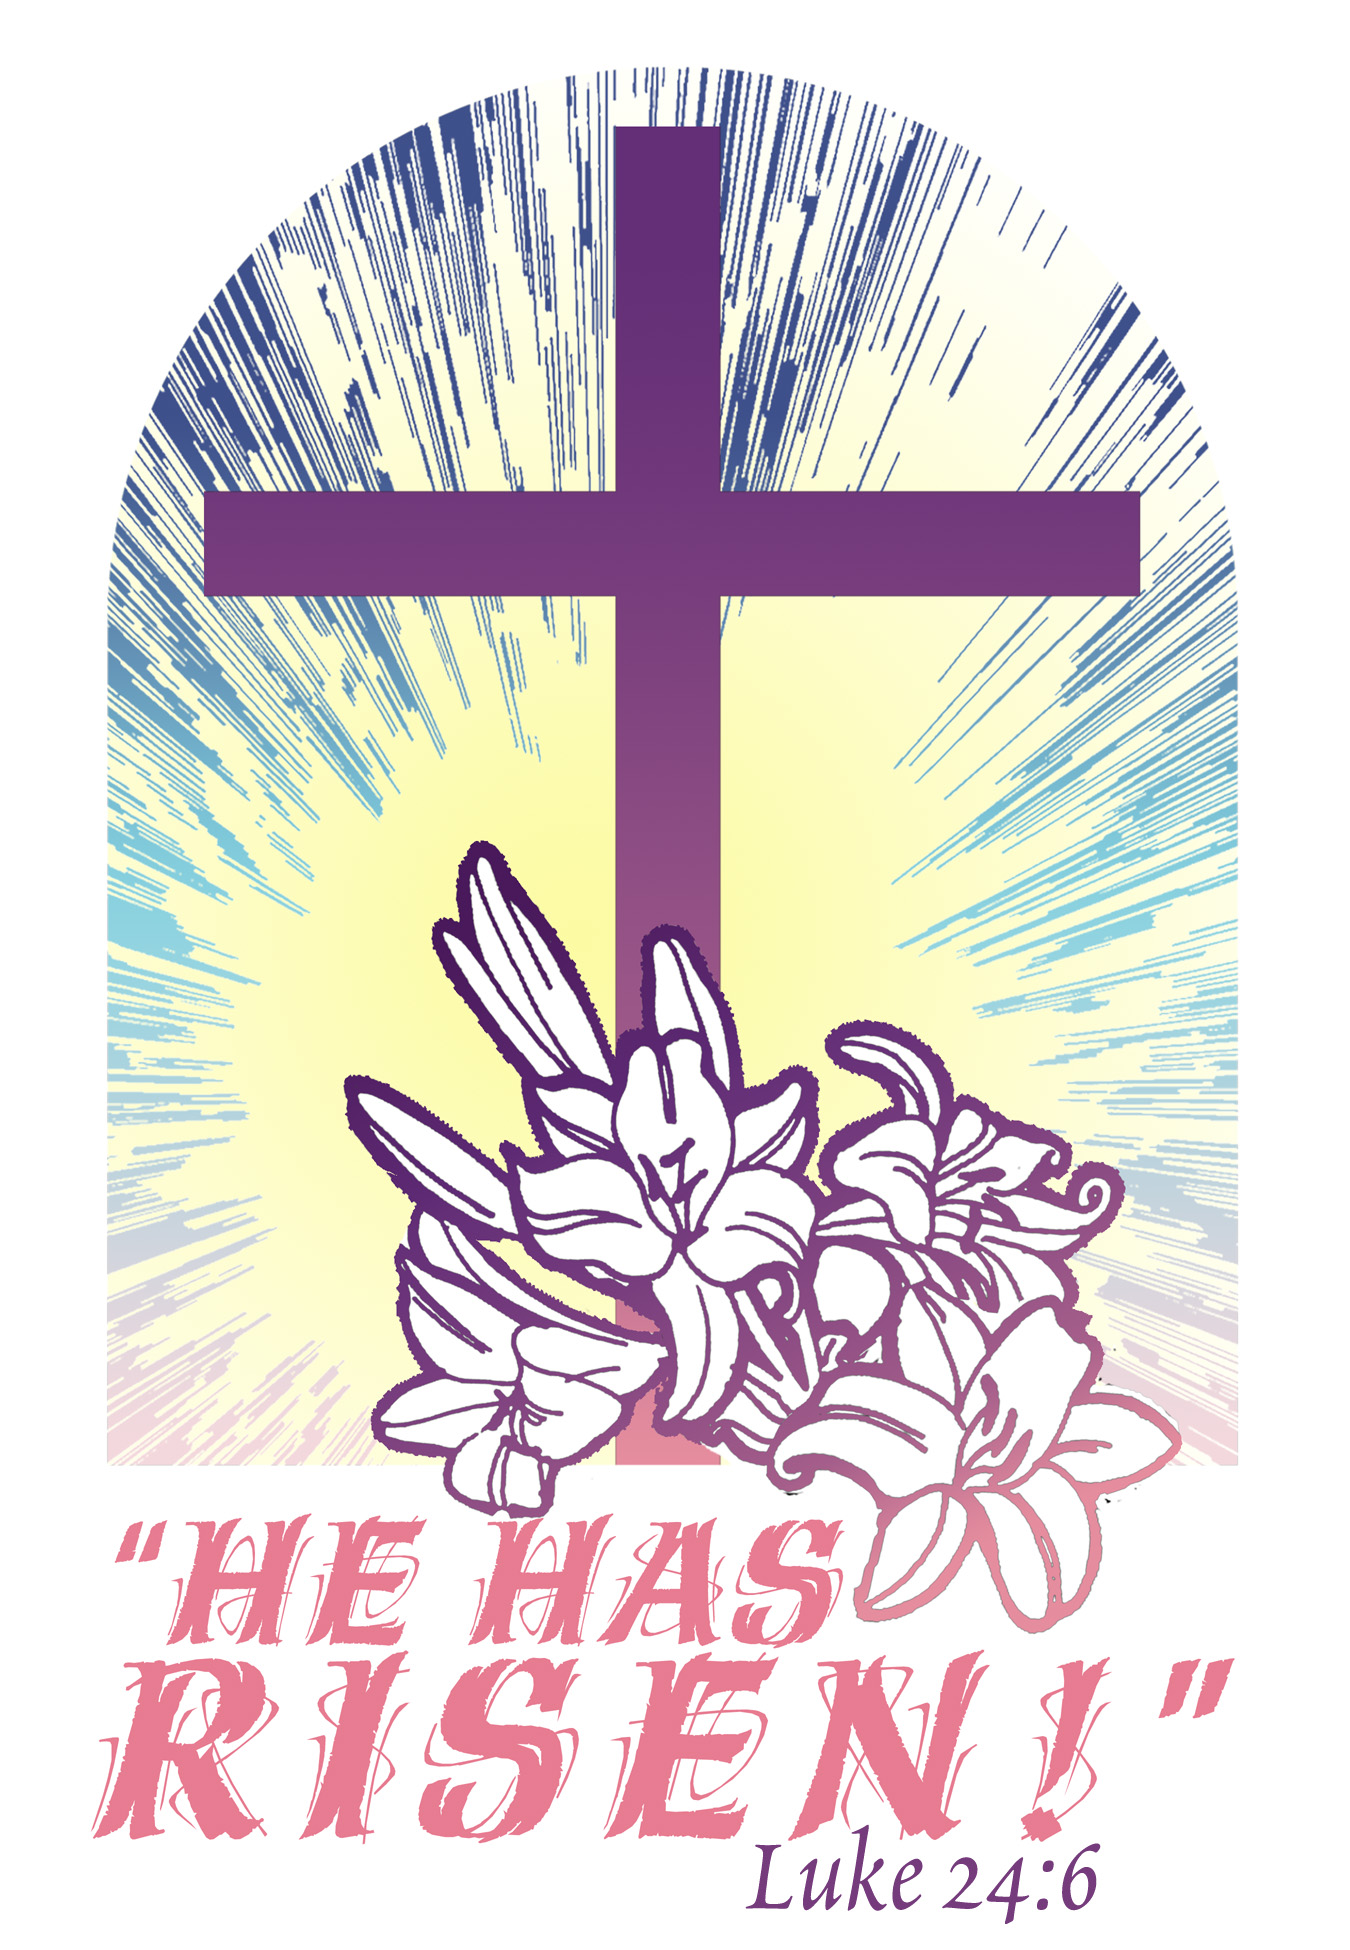 Free Clipart For Happy Easter With A Cross.